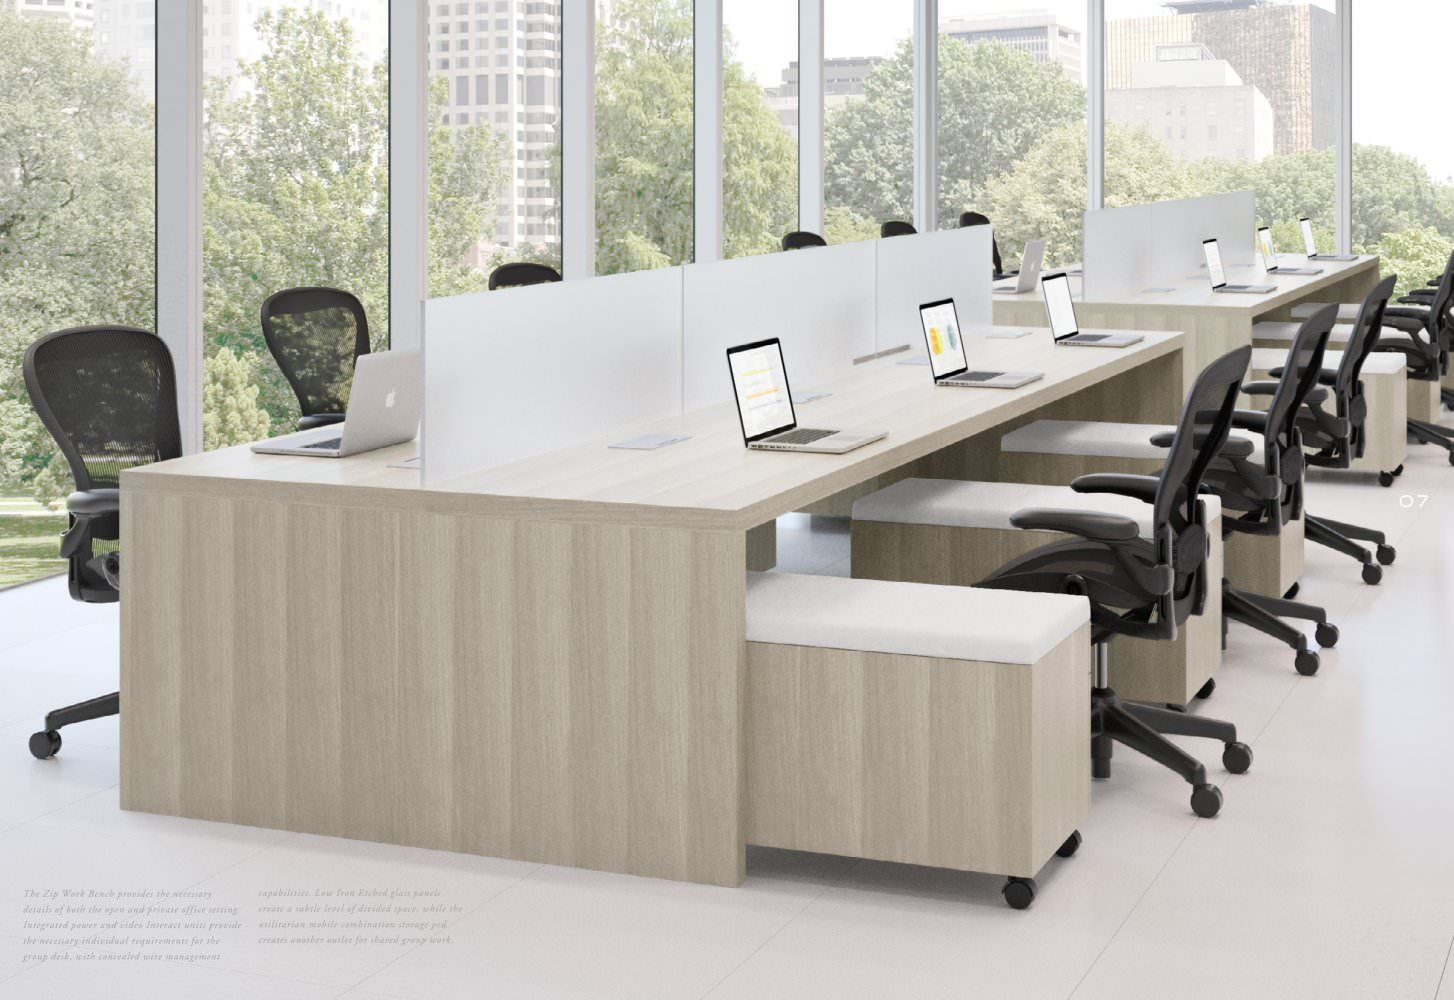 Pin By Atisa On Office Futniture Design Office Furniture Modern